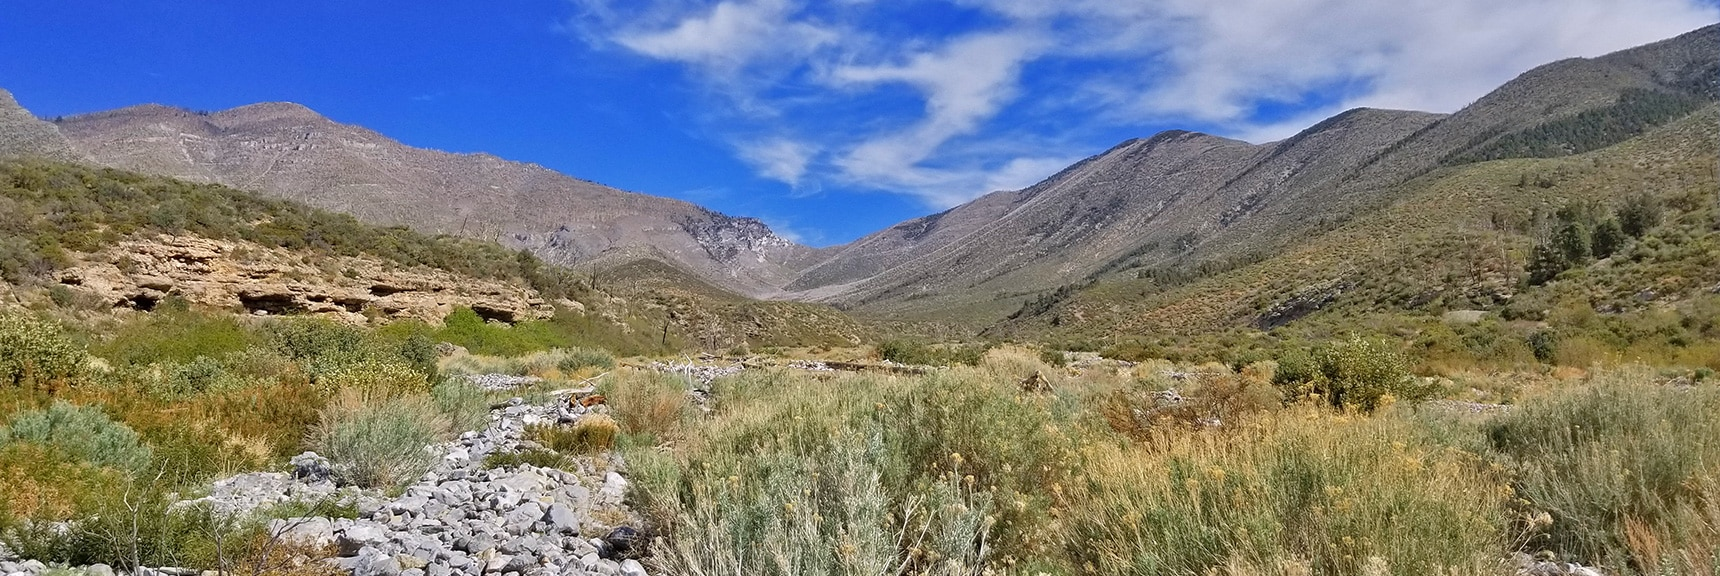 Beginning of Lovell Canyon Ascent Through Large Rocks and Brush | Harris Mountain from Lovell Canyon Nevada